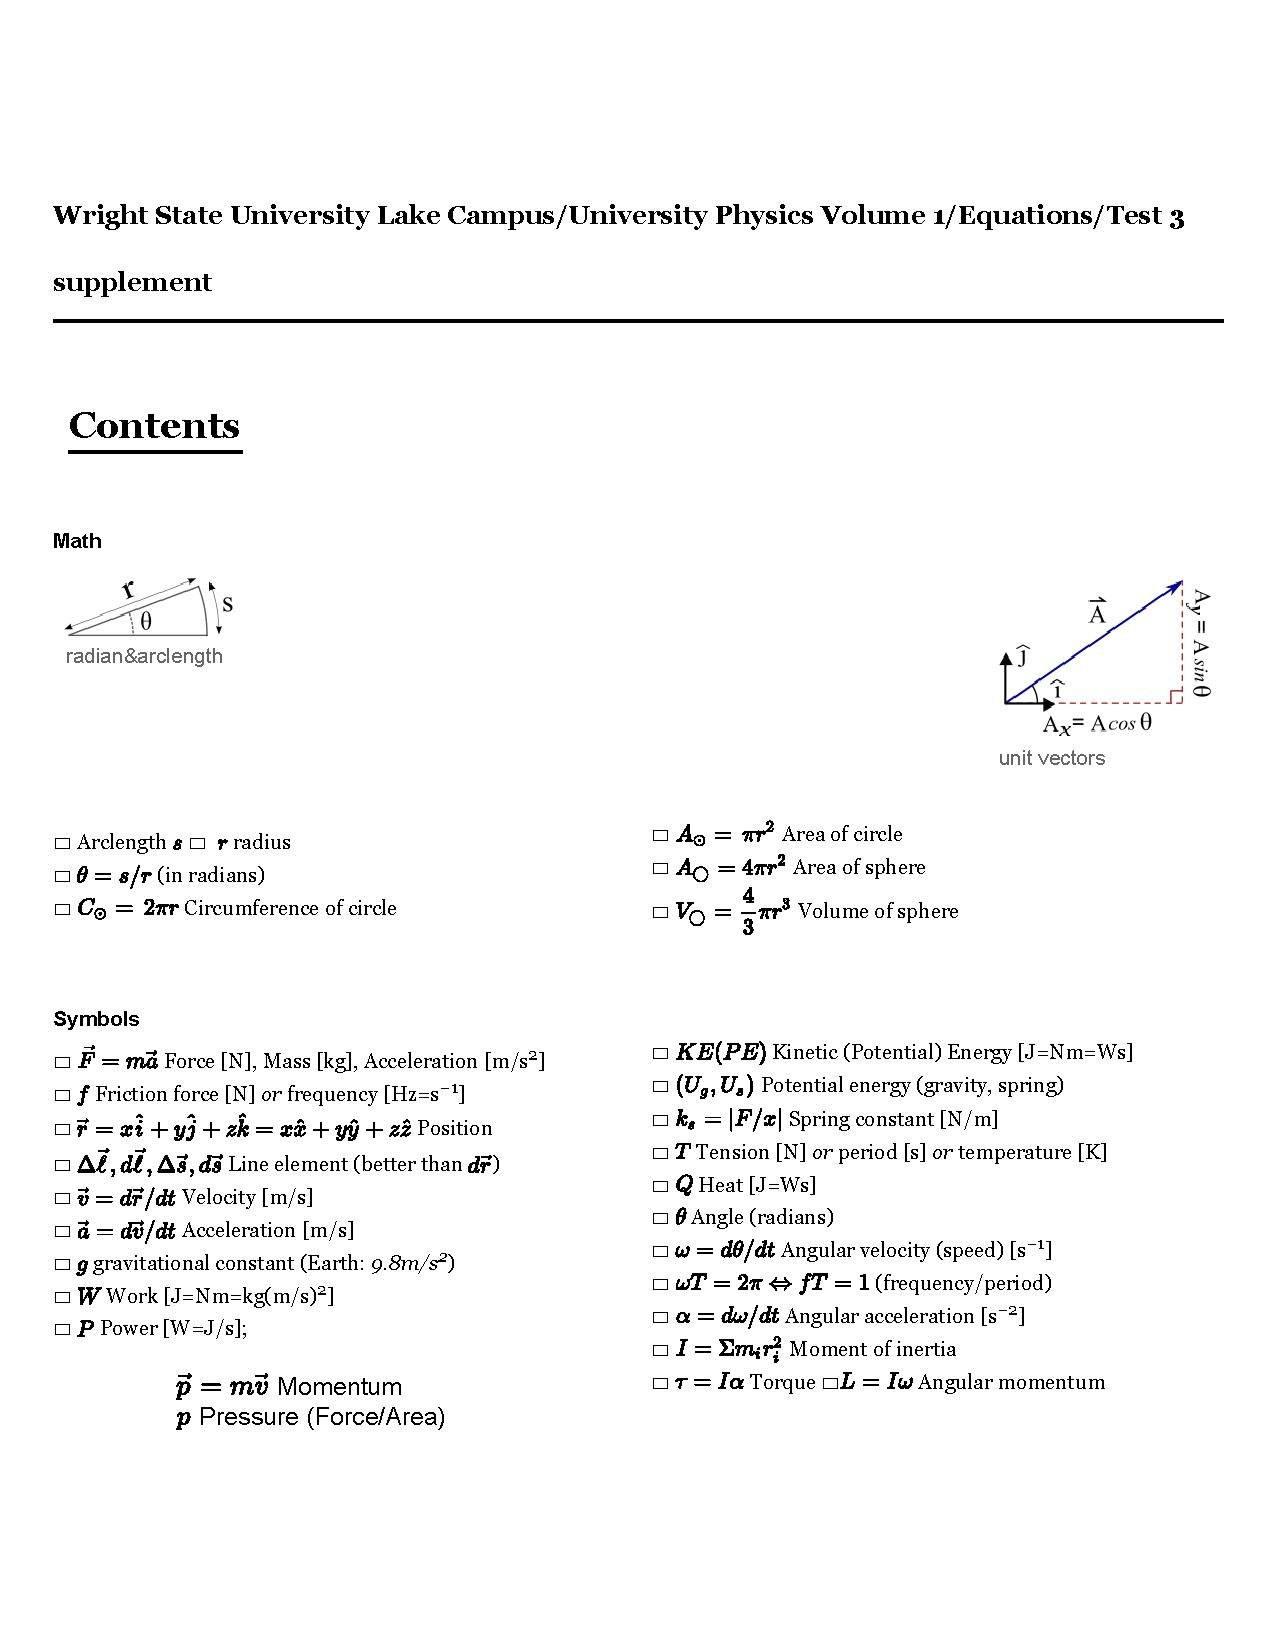 File Phy2400 Test 3 Equation Sheet Pdf Wikiversity